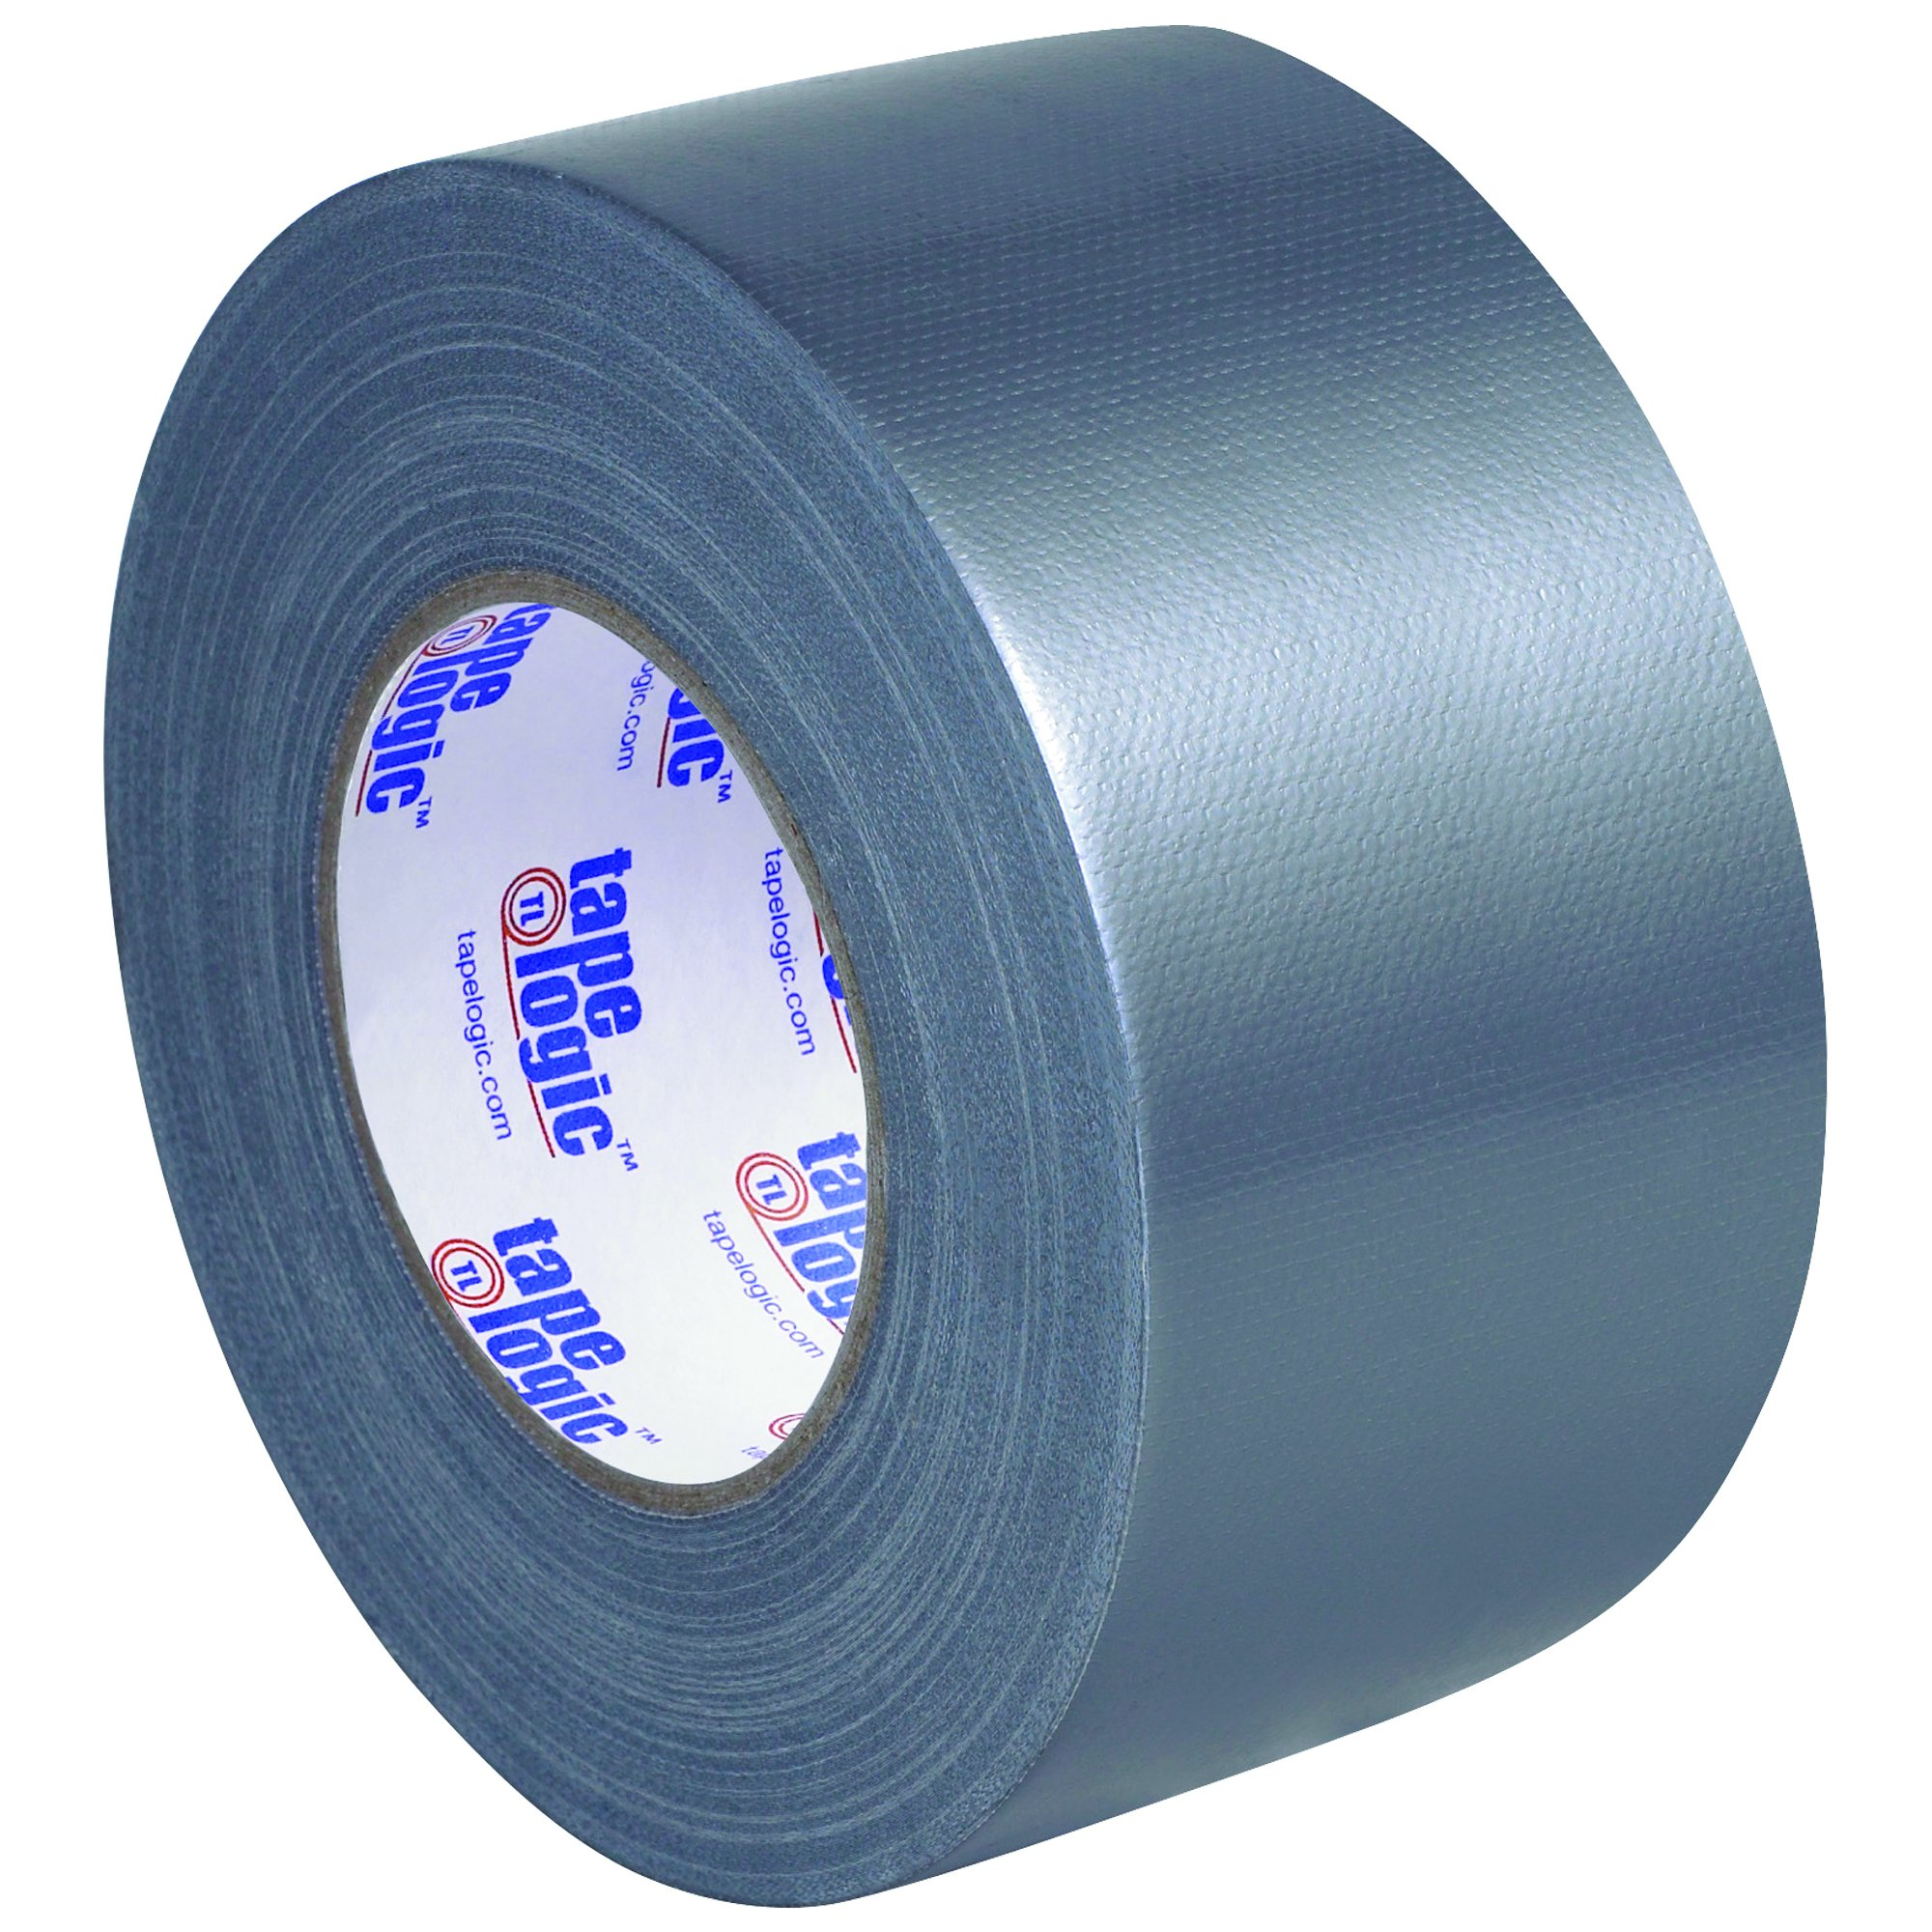 BOX USA BT98885S Silver Tape Logic Duct Tape, 9 mil, 3'' x 60 yd. (Pack of 16) by BOX USA